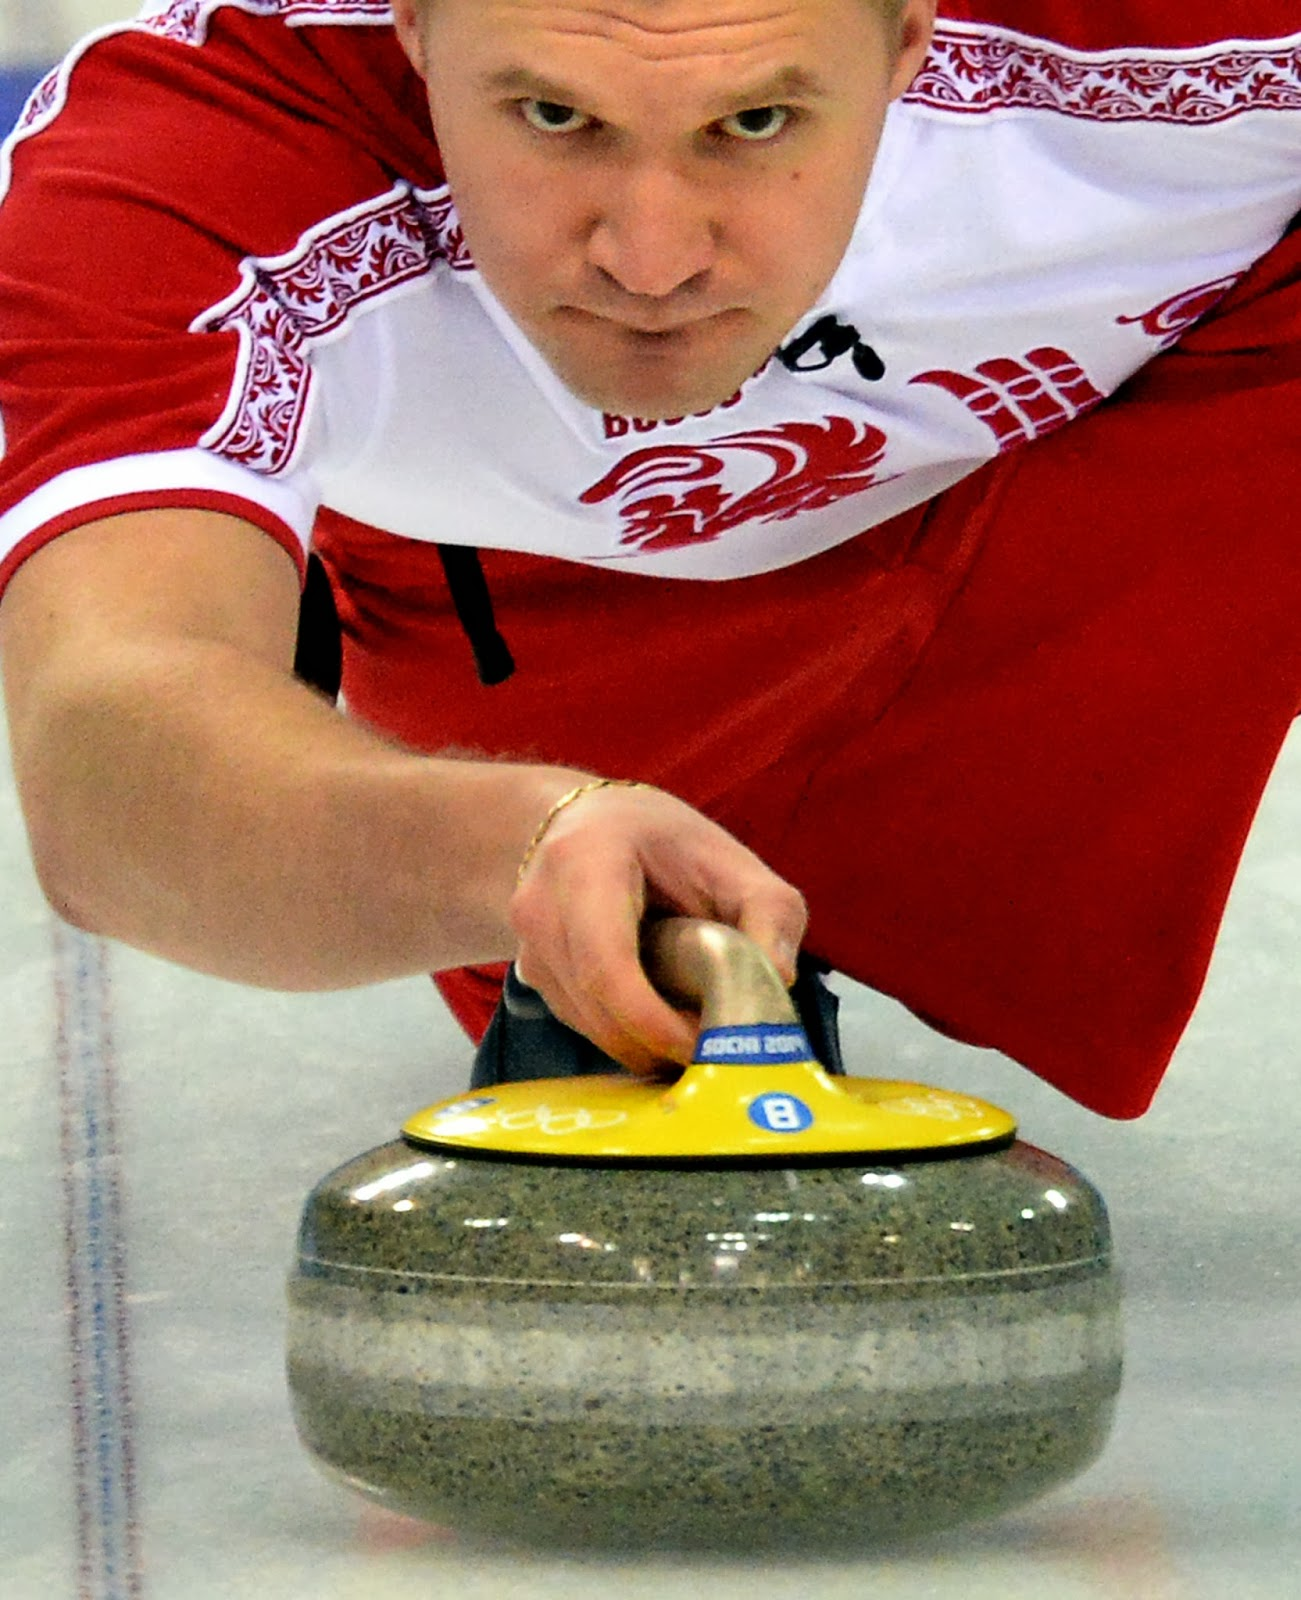 Canada, Curling, Denmark, Germany, Ice Cube, Match, Norway, Olympic, Pictures, Russia, Sochi, Sochi Winter Olympics, Sports, USA,